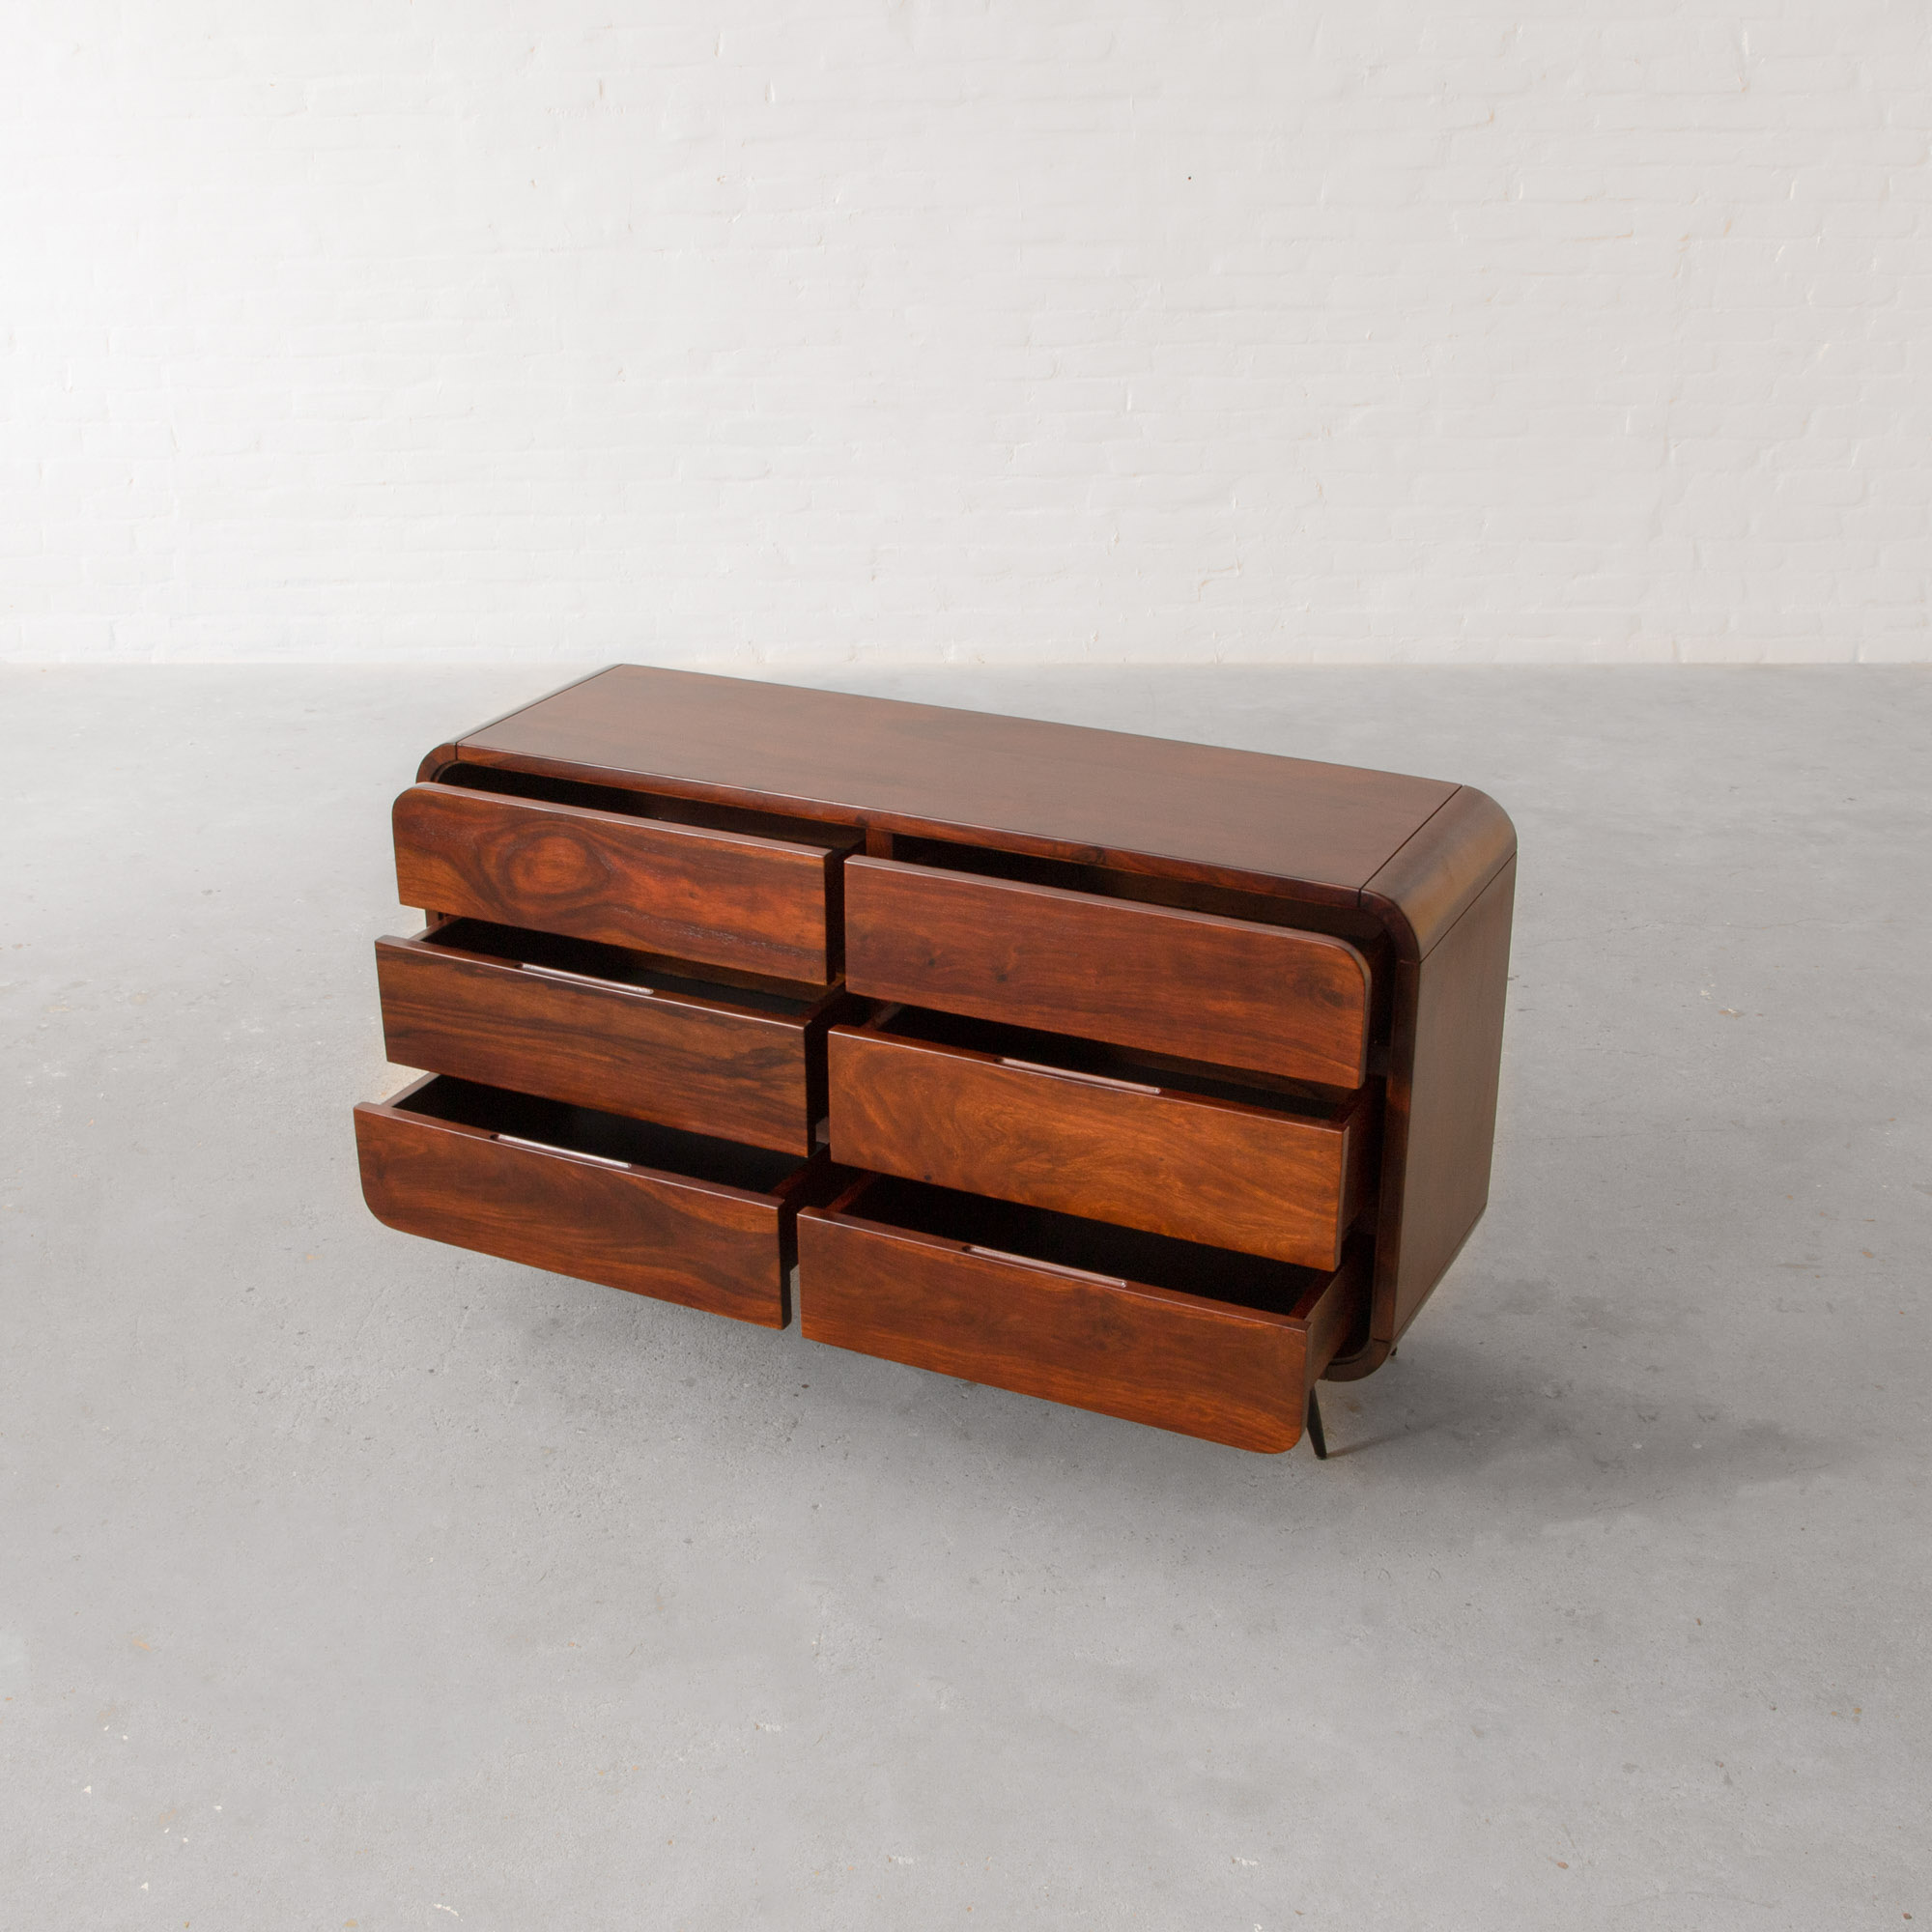 Malabar Hill Chest of Drawers